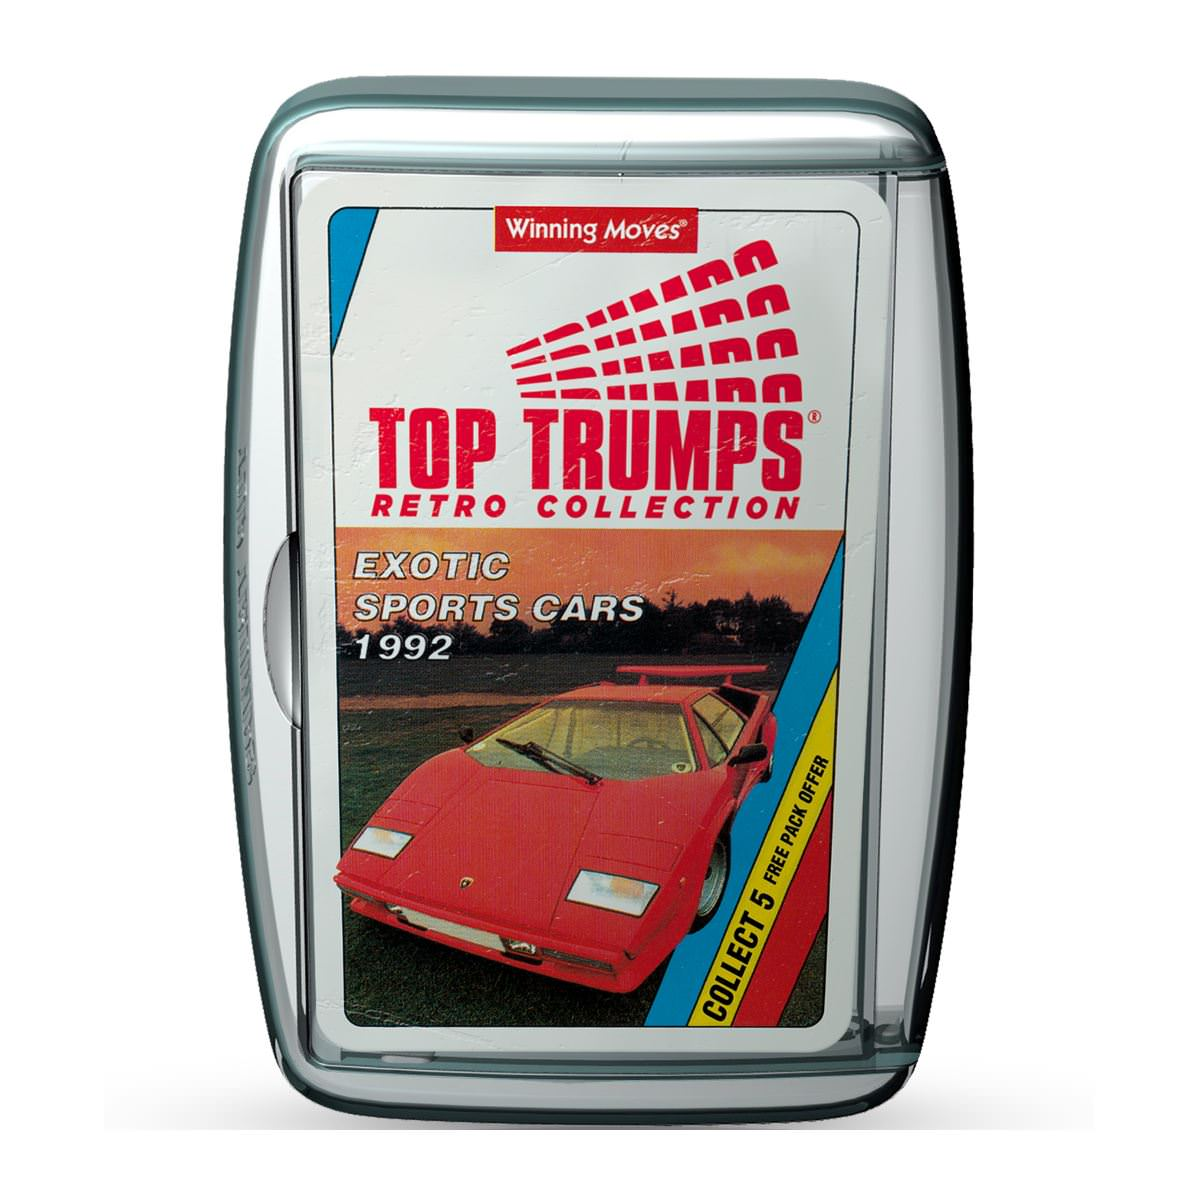 Top Trumps Exotic Sports Cars